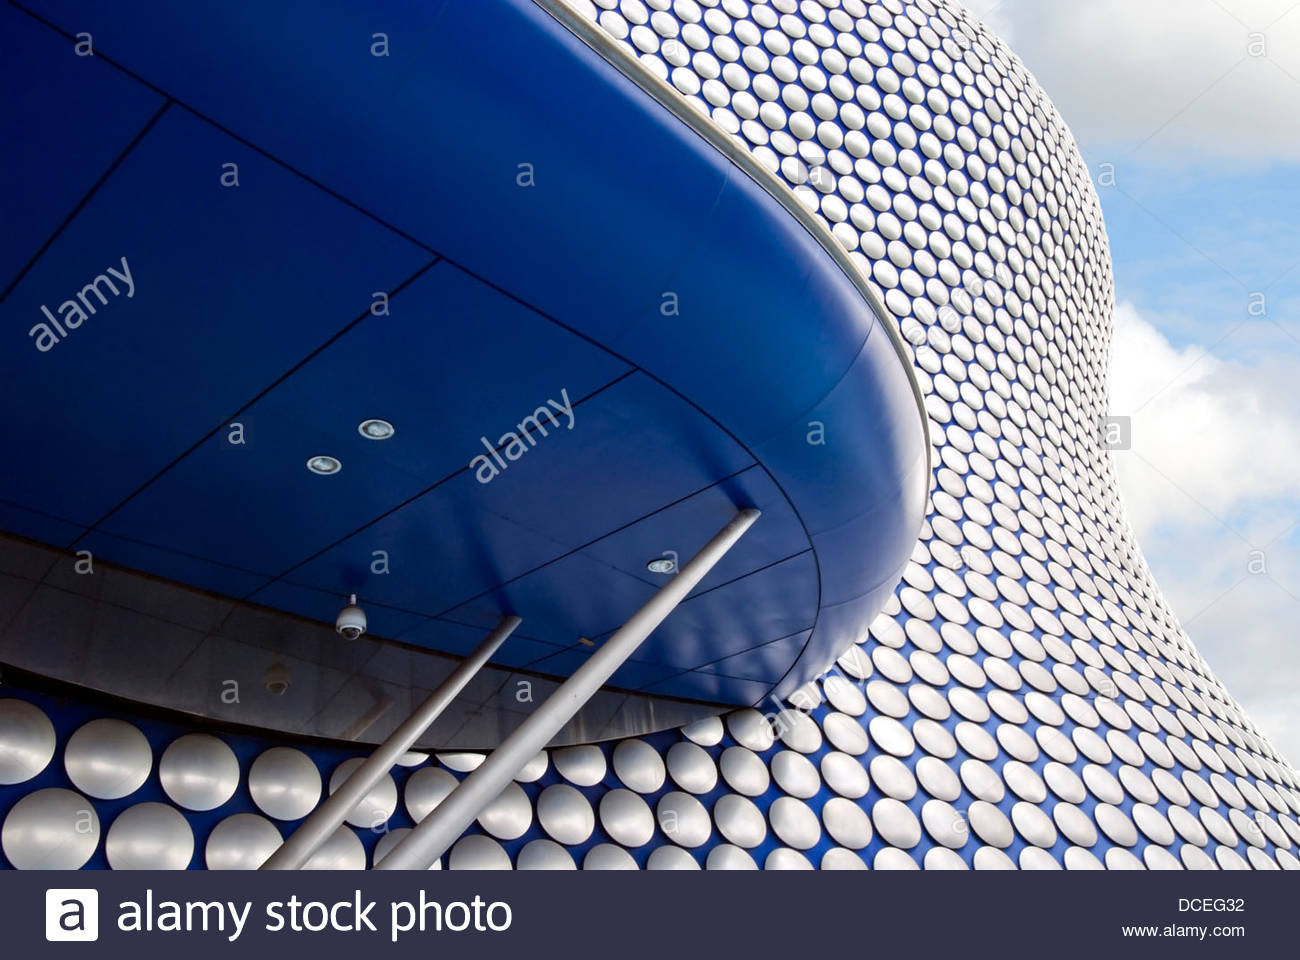 Detail image of the Selfridges Departmentstore at the Bull Ring shopping centre, a major commercial area of Birmingham, - Stock Image